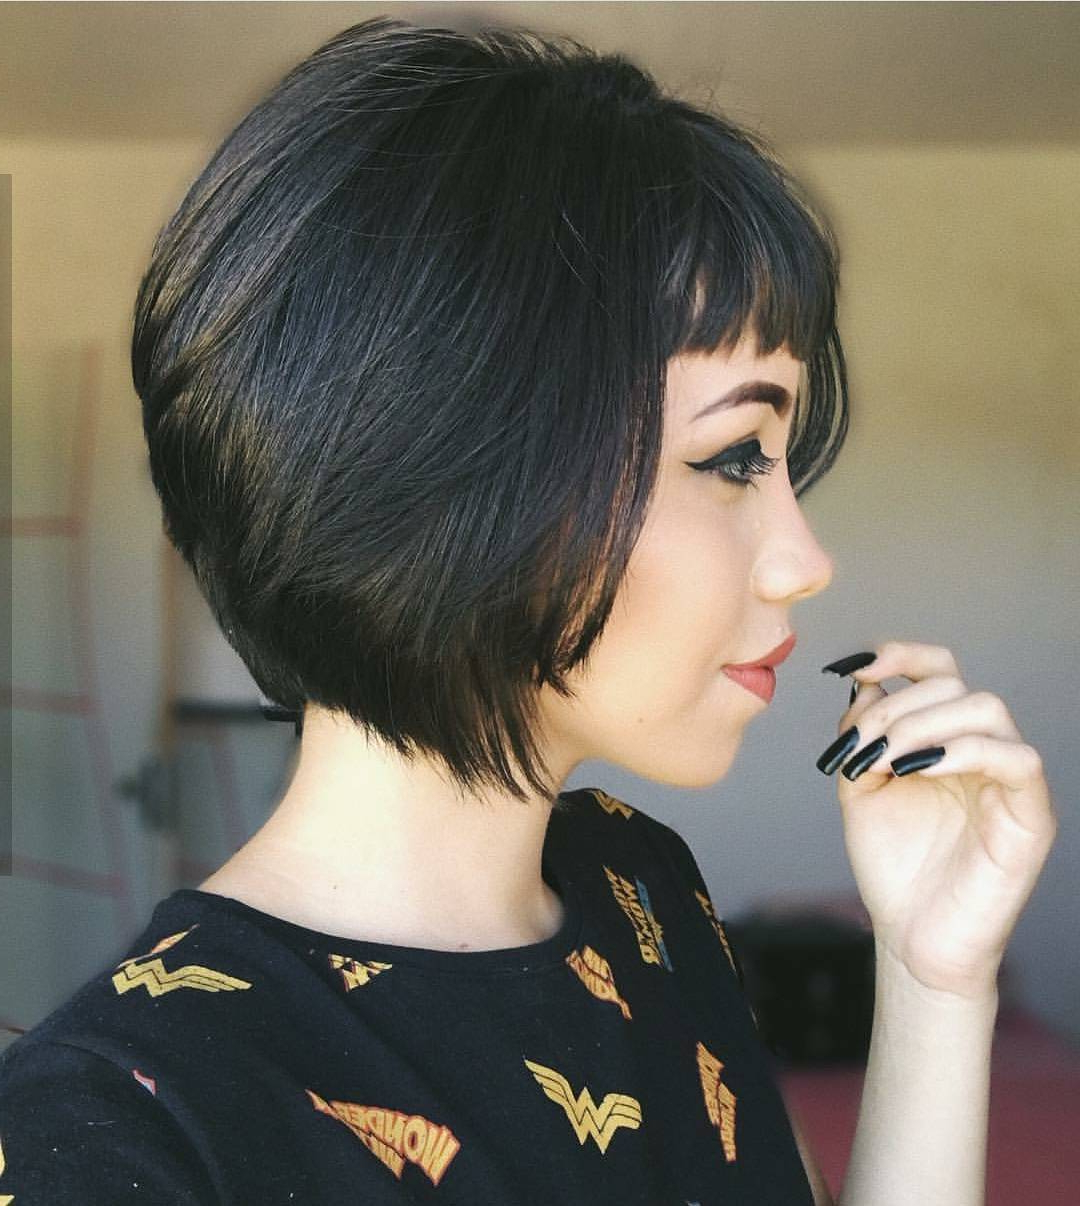 10 Chic Short Bob Haircuts That Balance Your Face Shape! – Short Within Short Black Bob Haircuts (View 15 of 25)